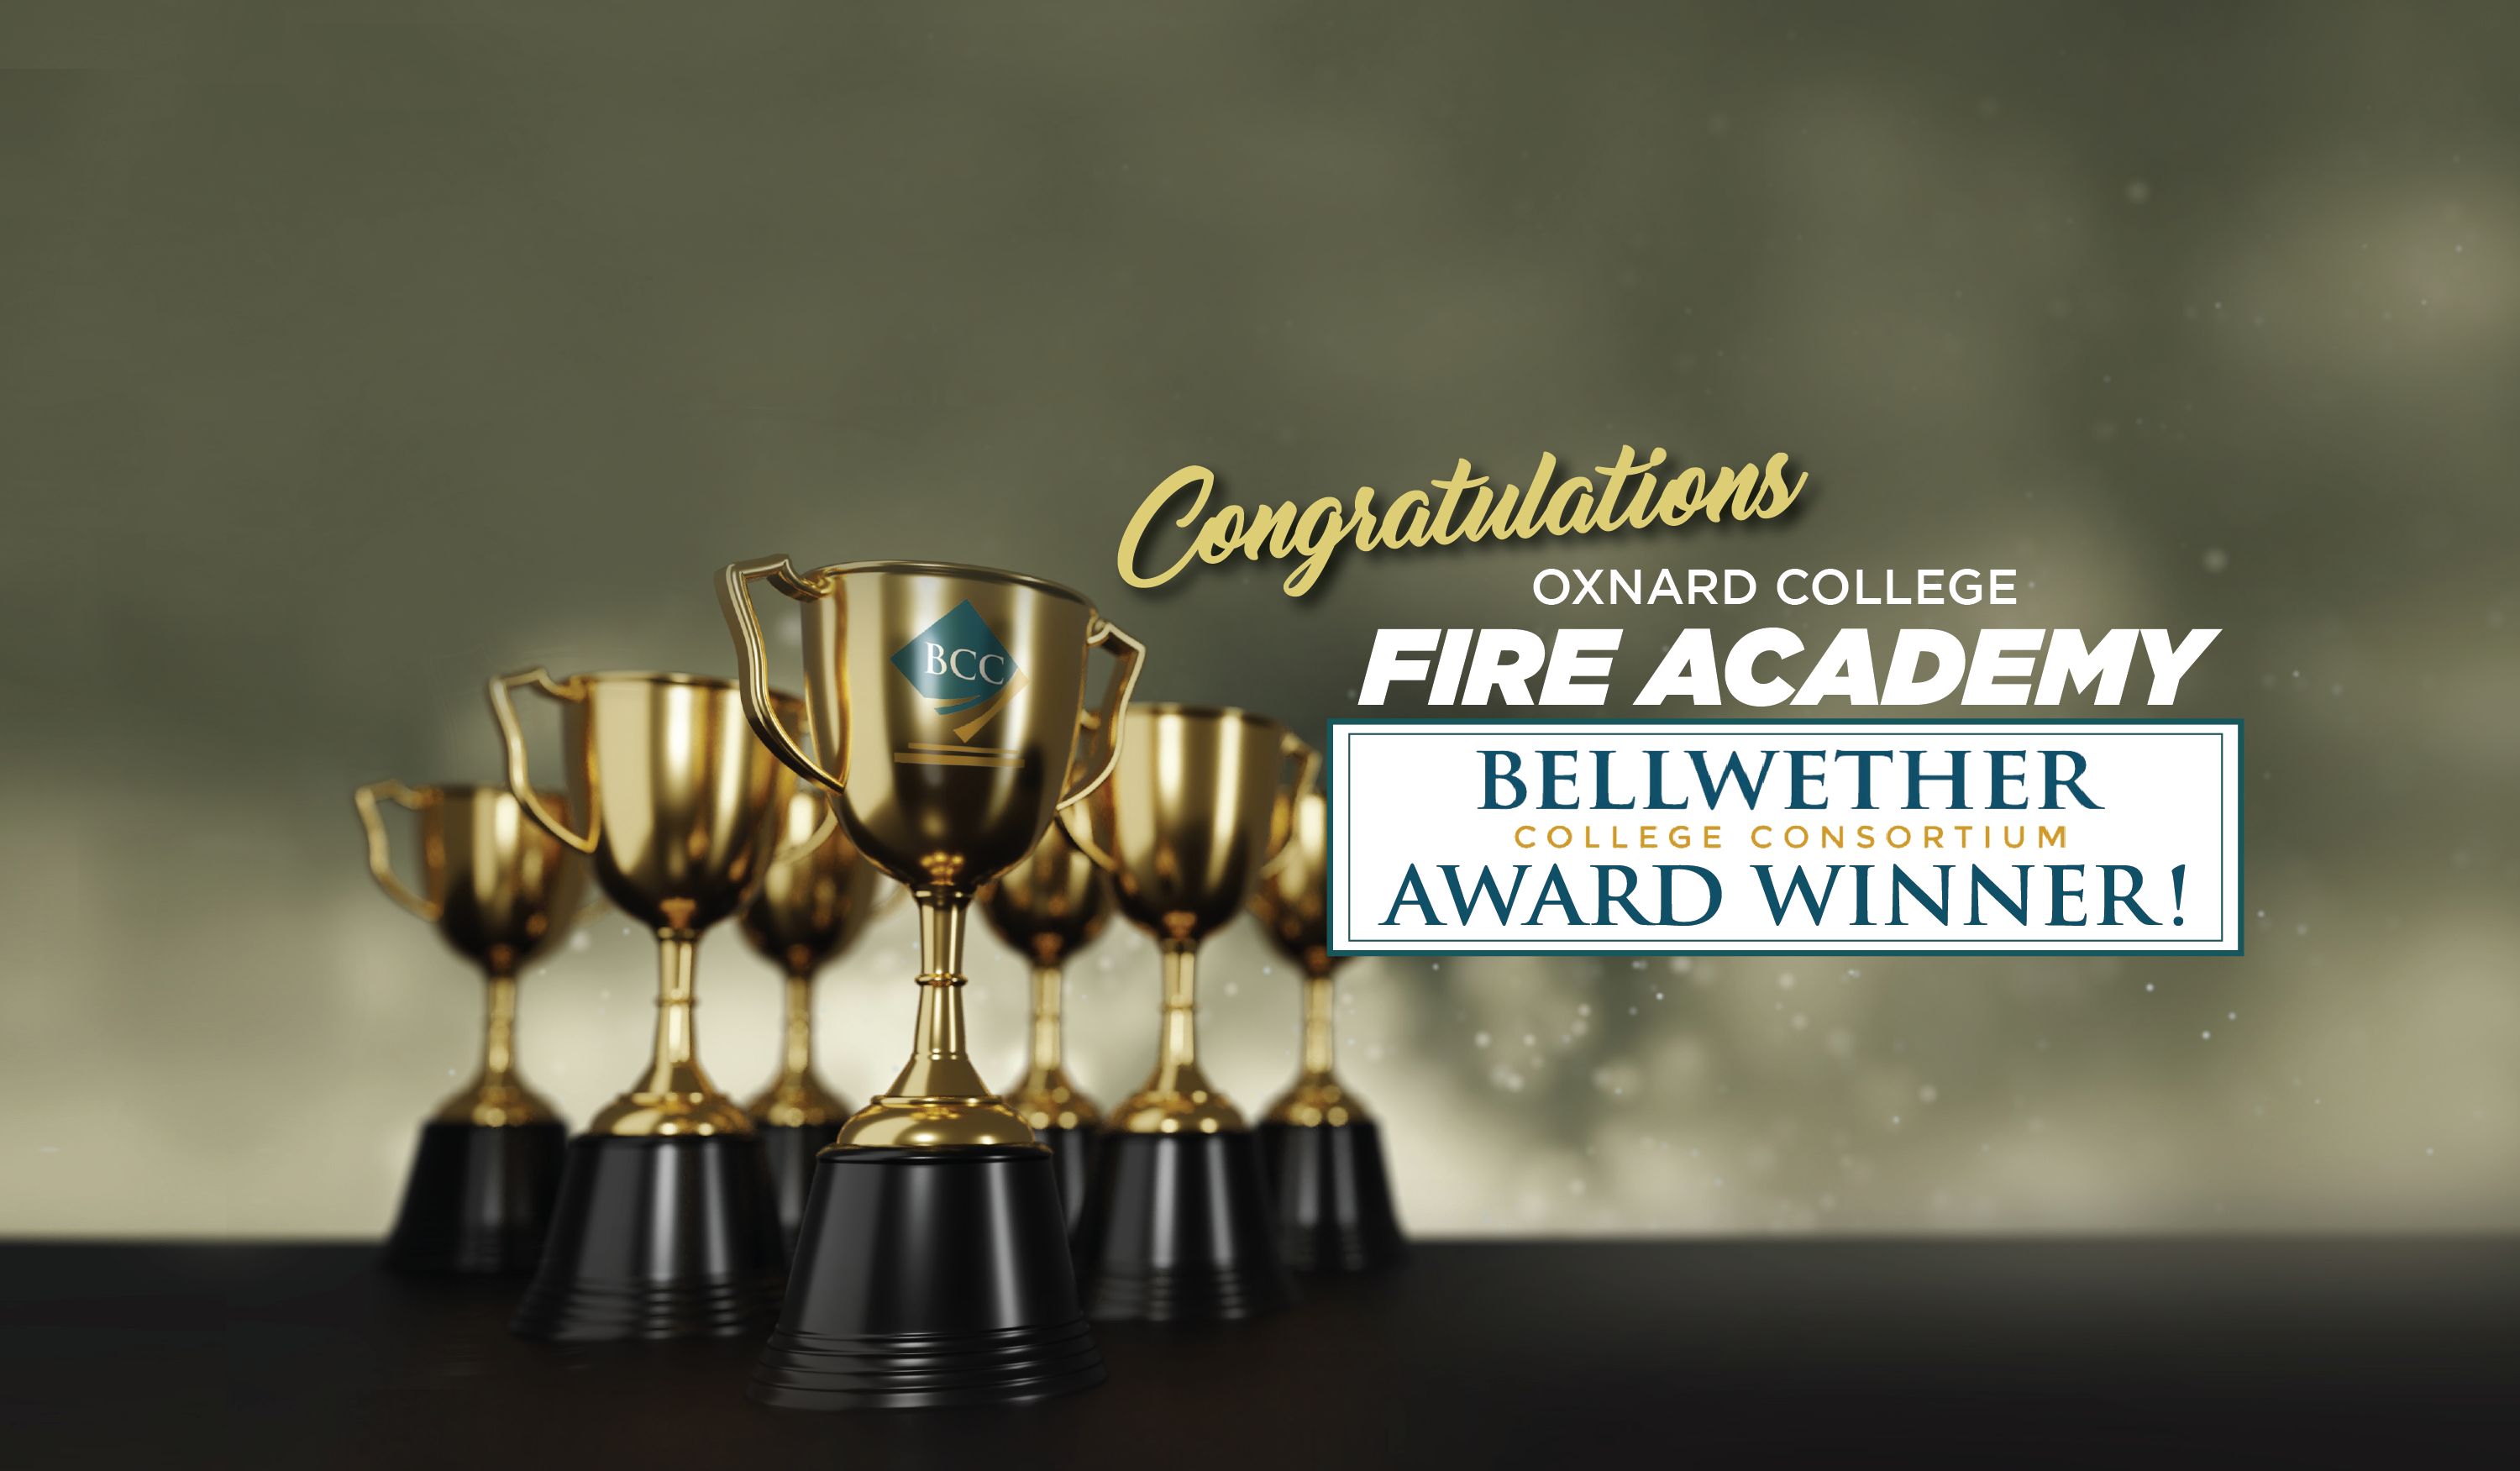 Congratulations Oxnard College Fire Academy Bellwether Award Winner!